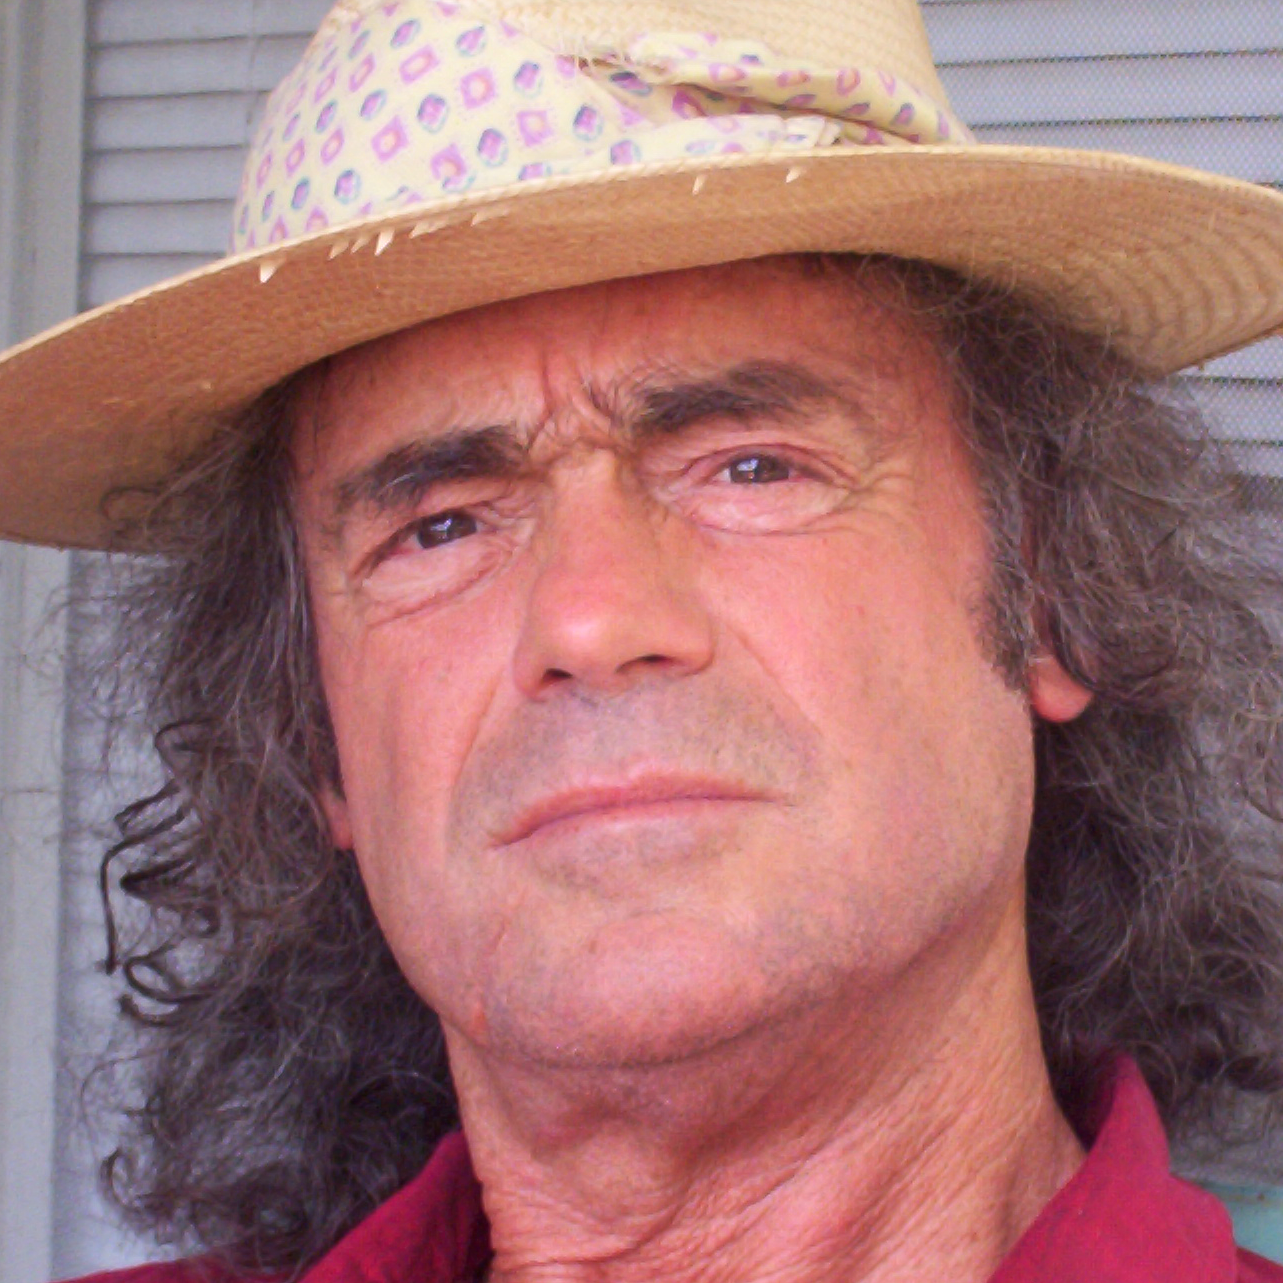 Man with long dark hair wearing a red shirt and a straw hat